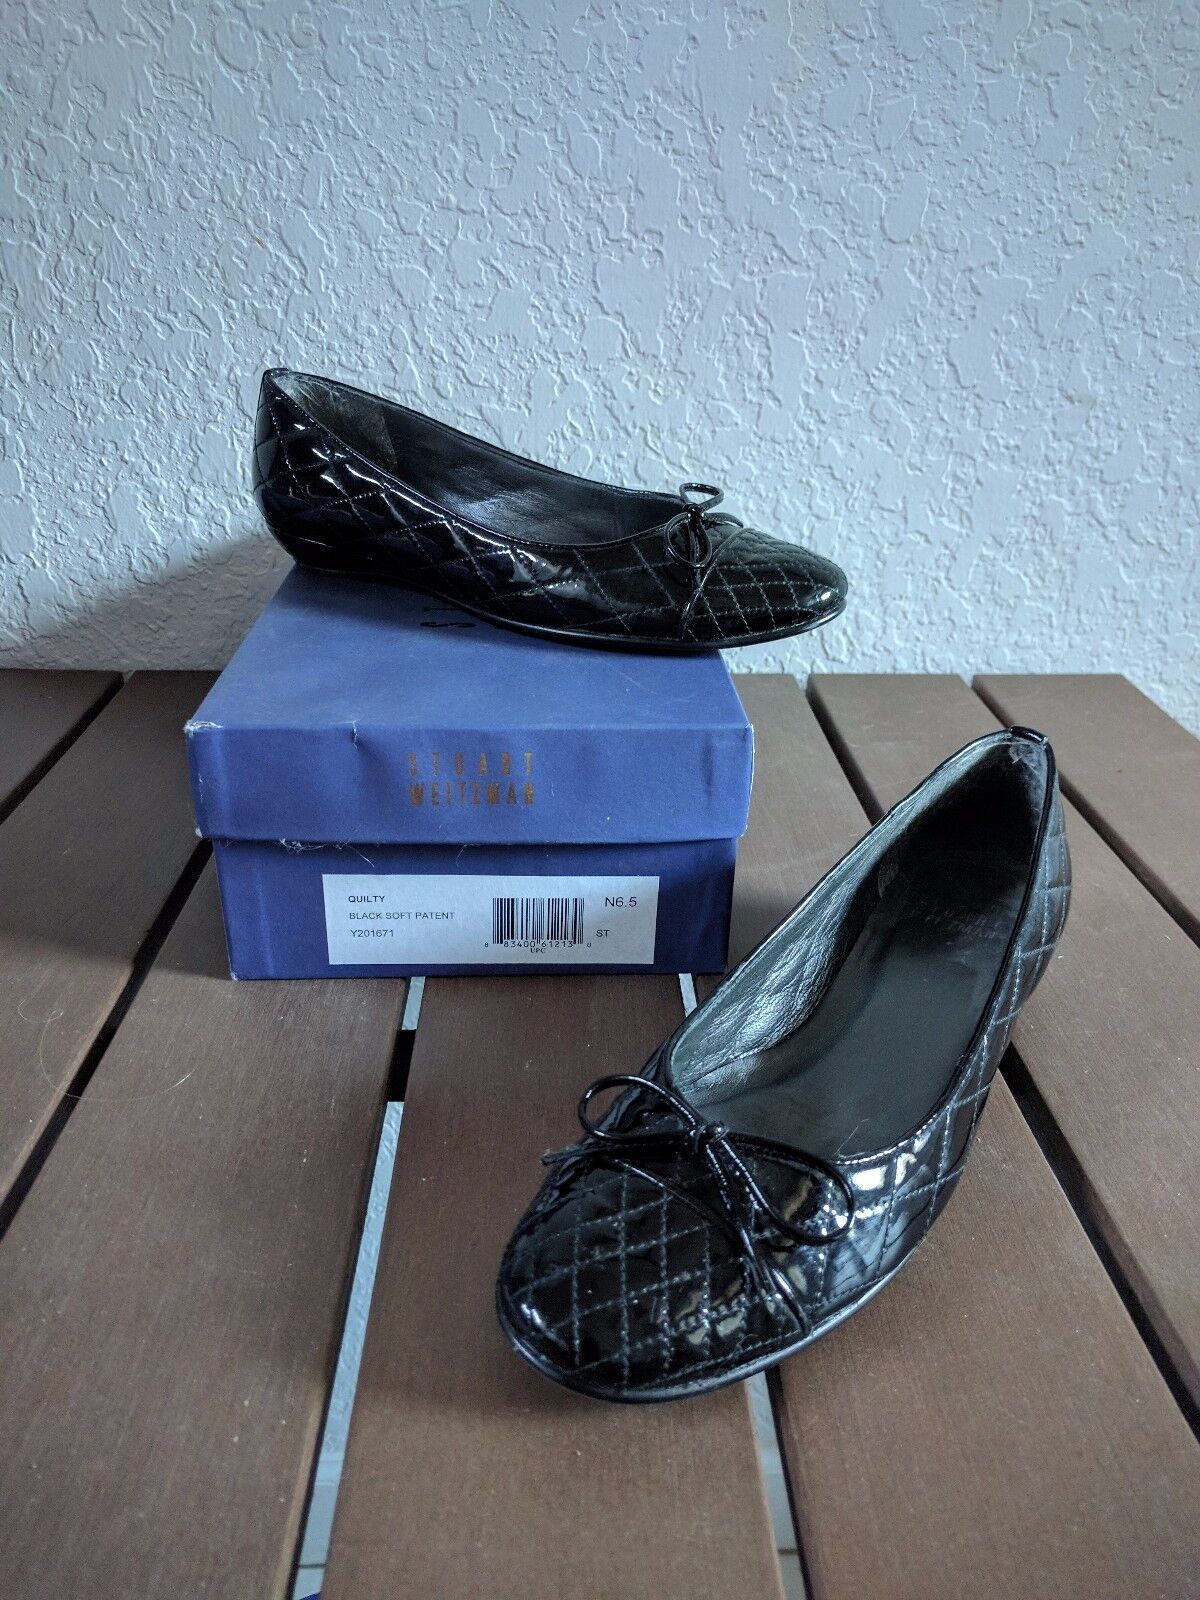 STUART WEITZMAN Women's  QUILTY  BLACK SOFT PATENT Size 6.5N NARROW